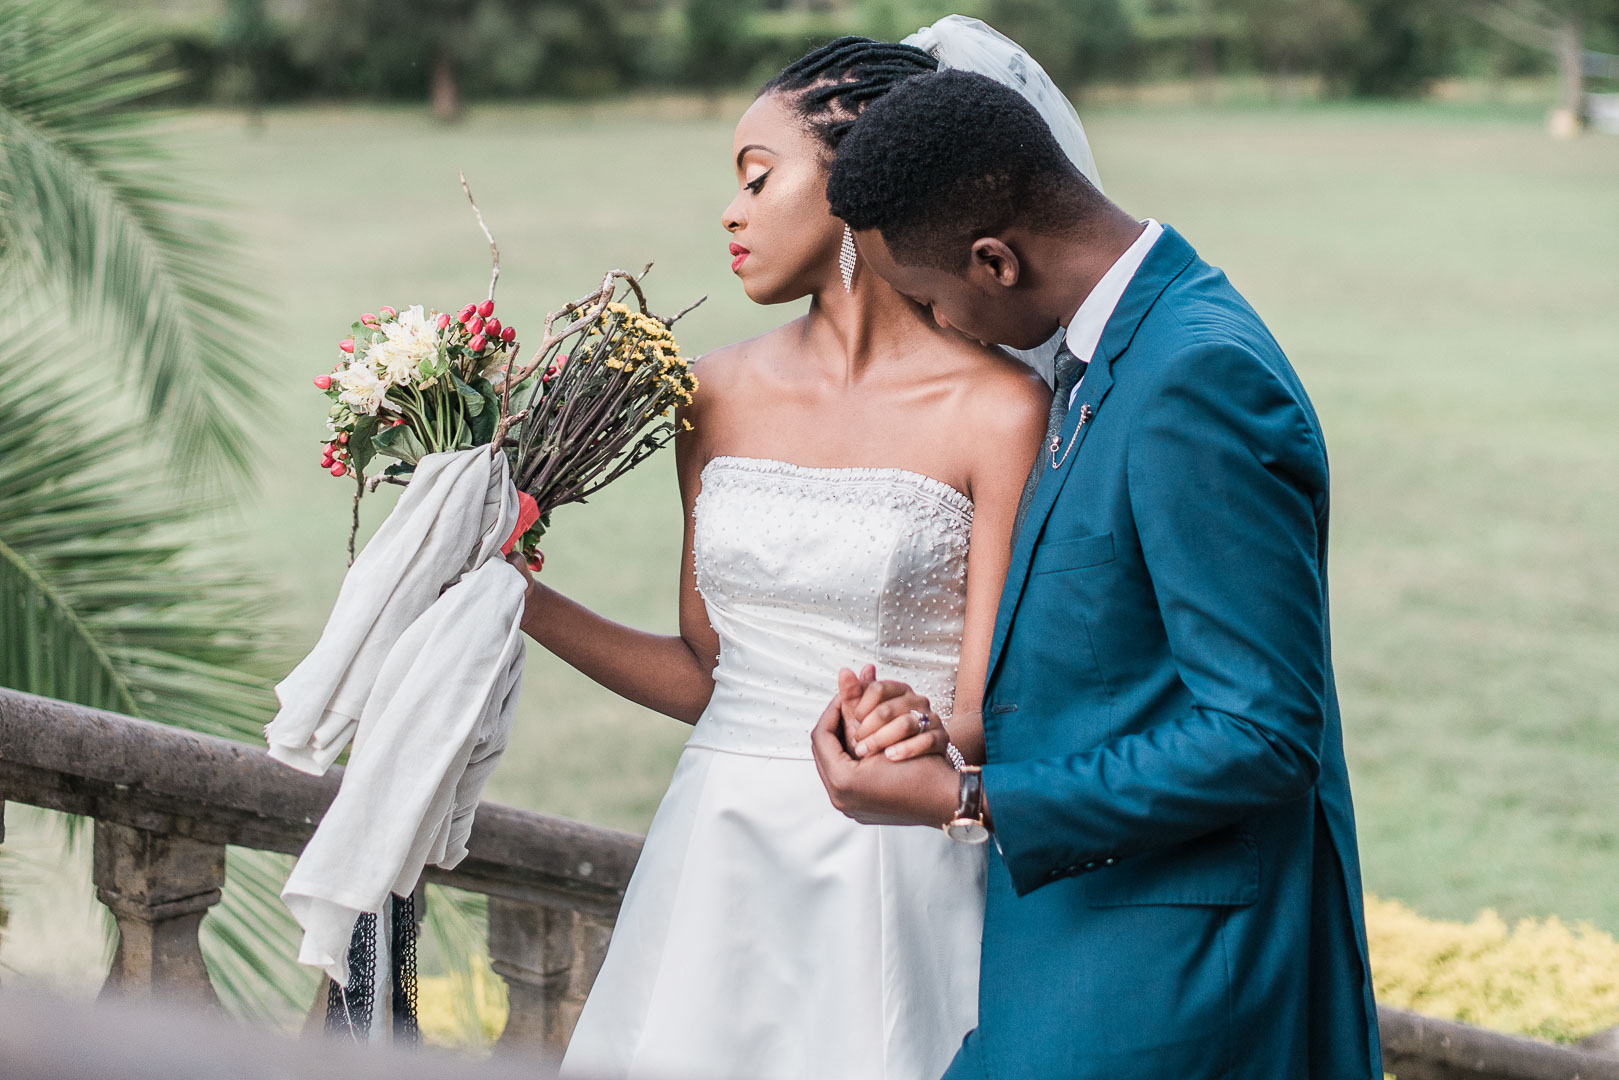 how to look good on your wedding day